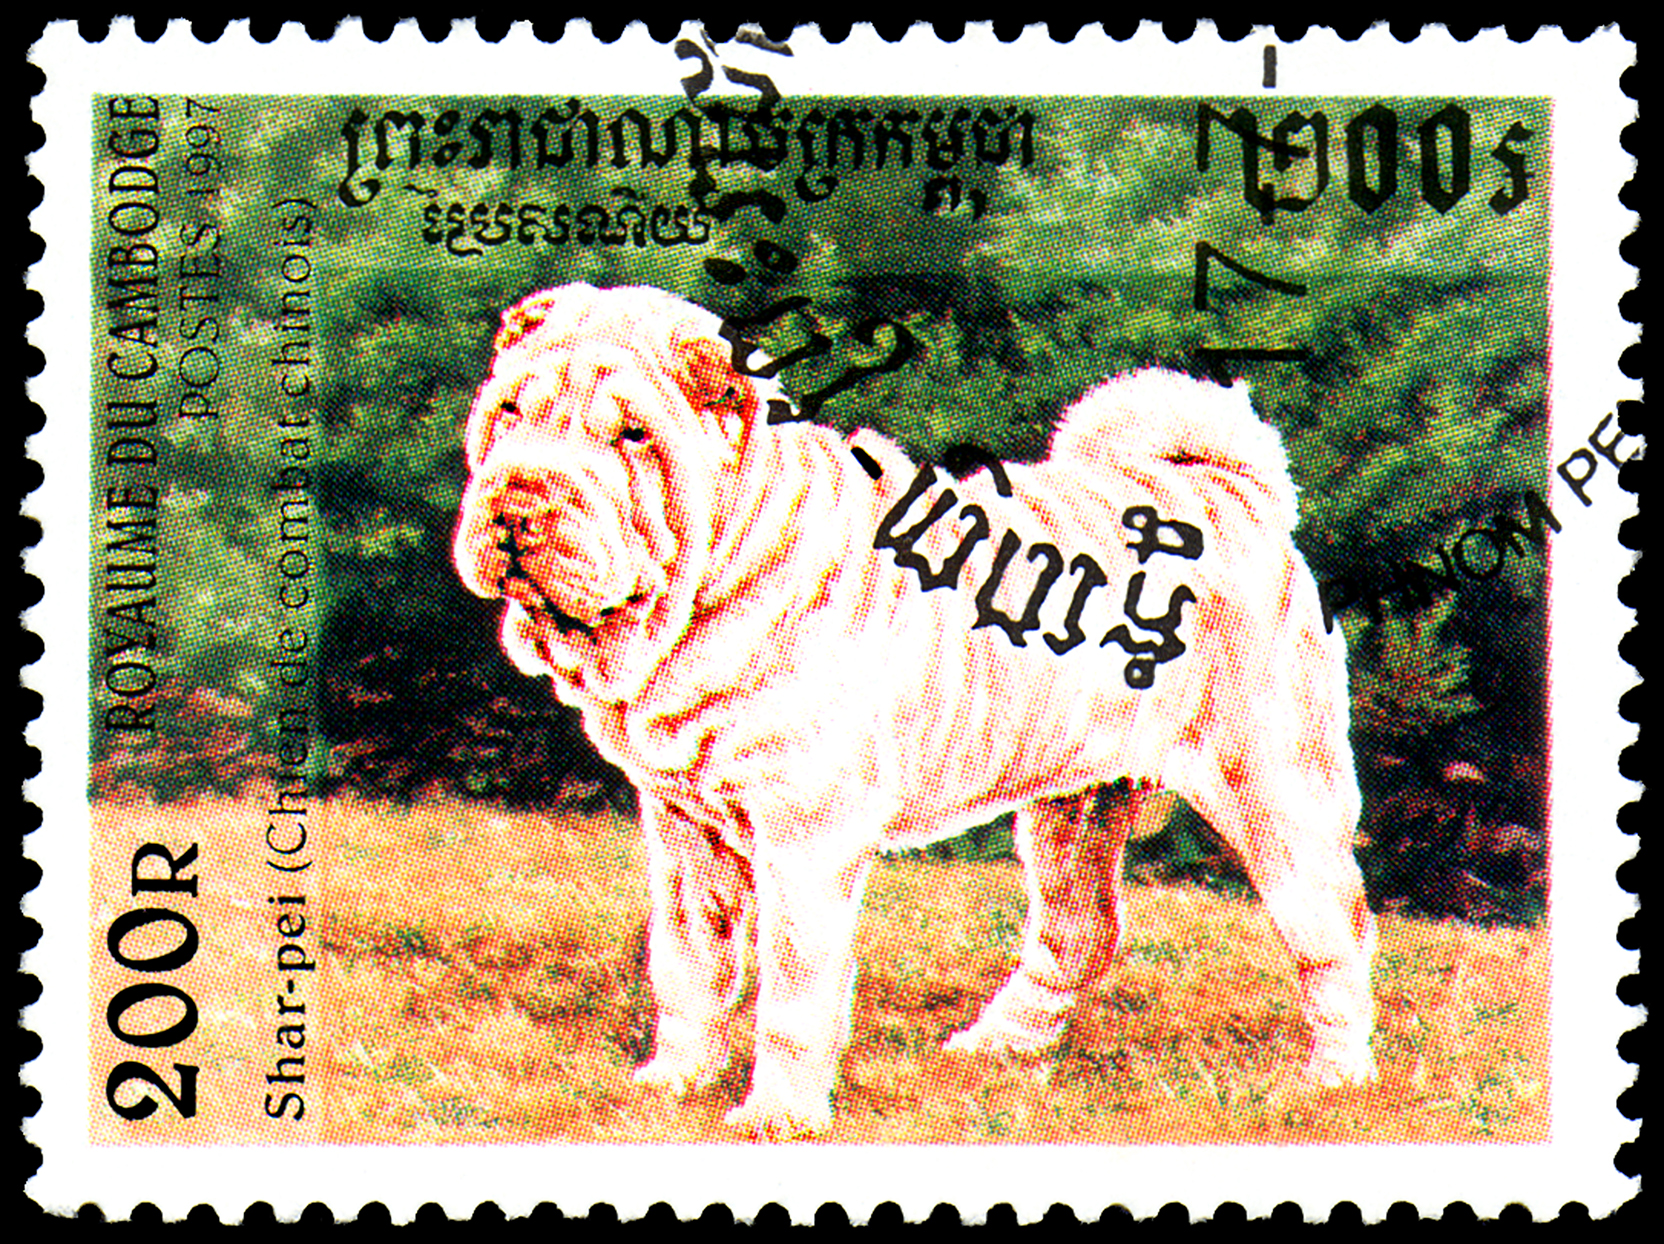 Old postage stamp with illustration of shar-pei dog featured